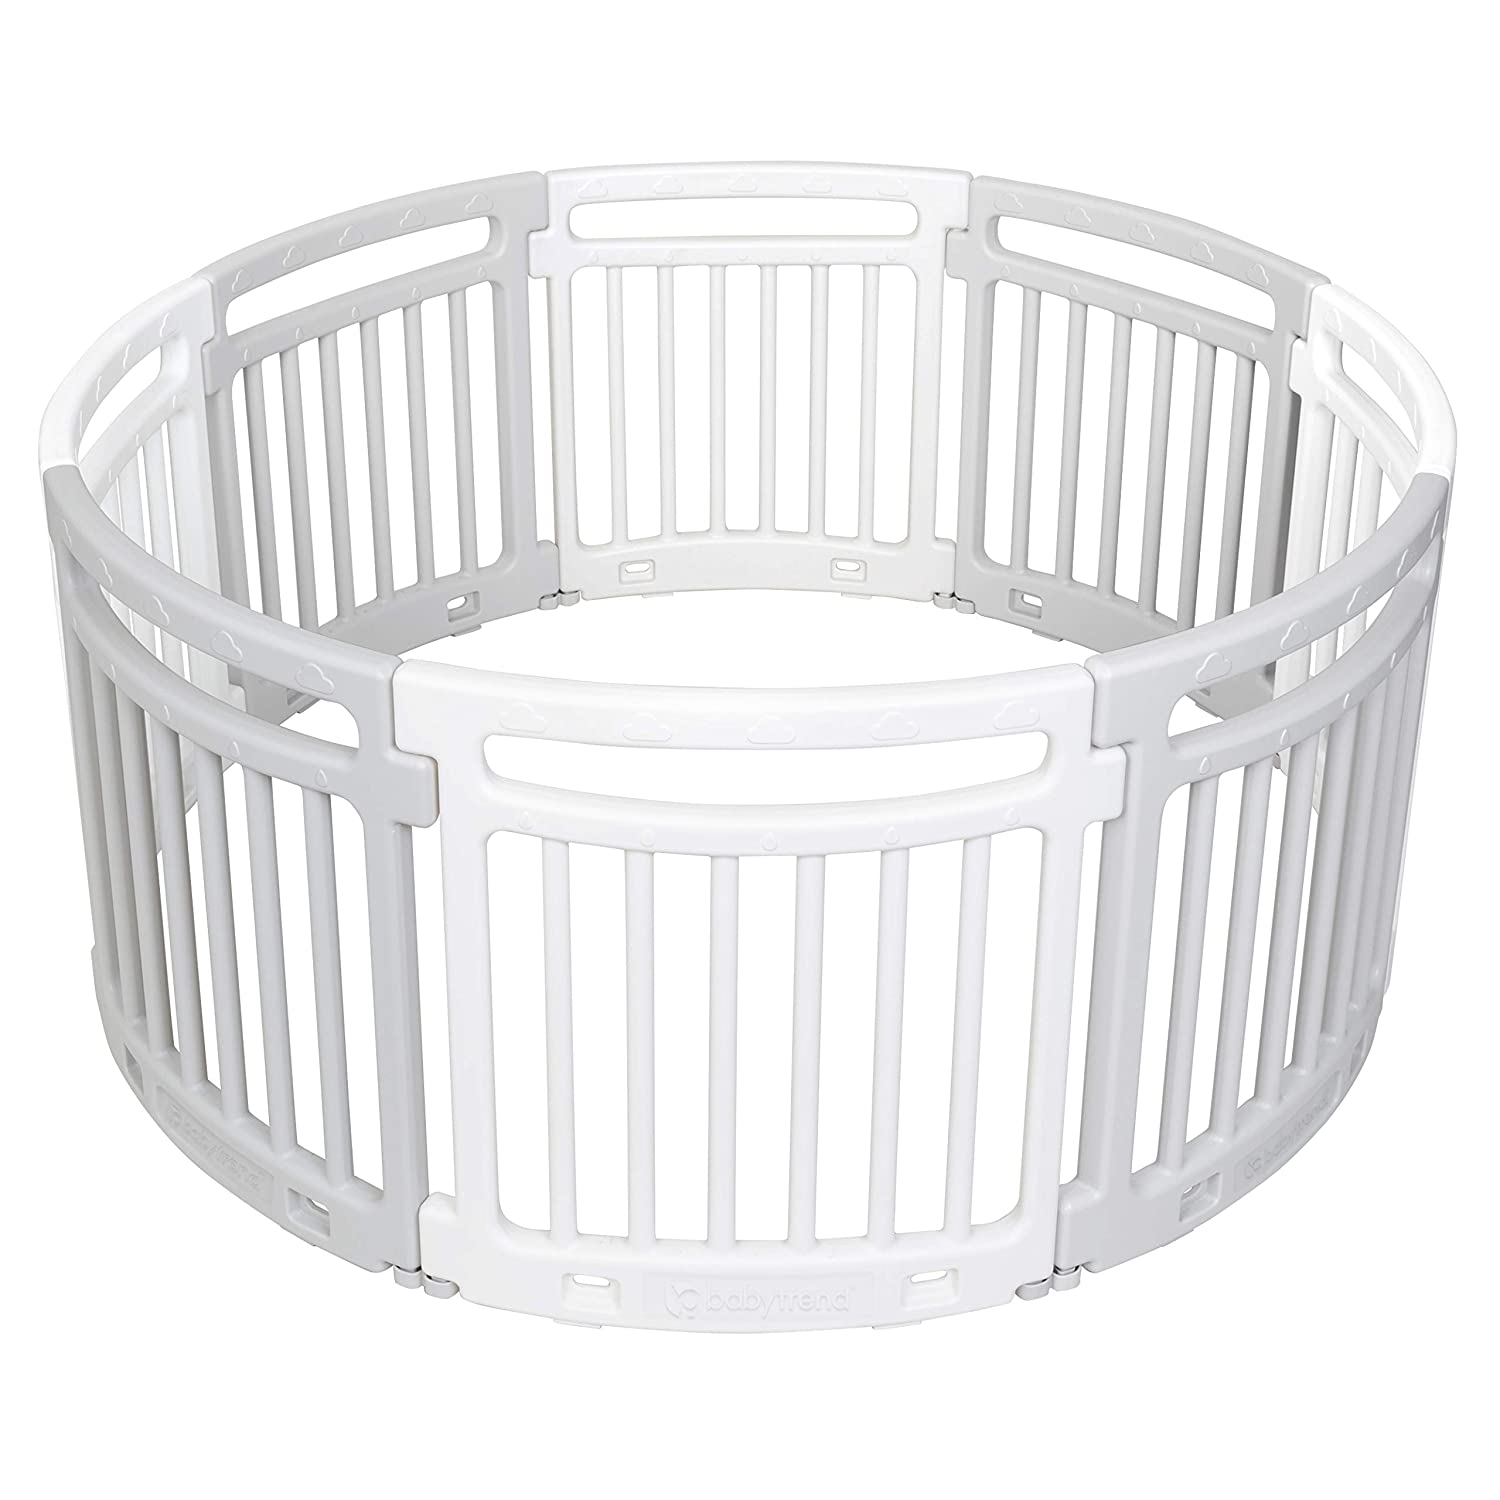 Baby Trend Circular Baby and Toddler Playpen